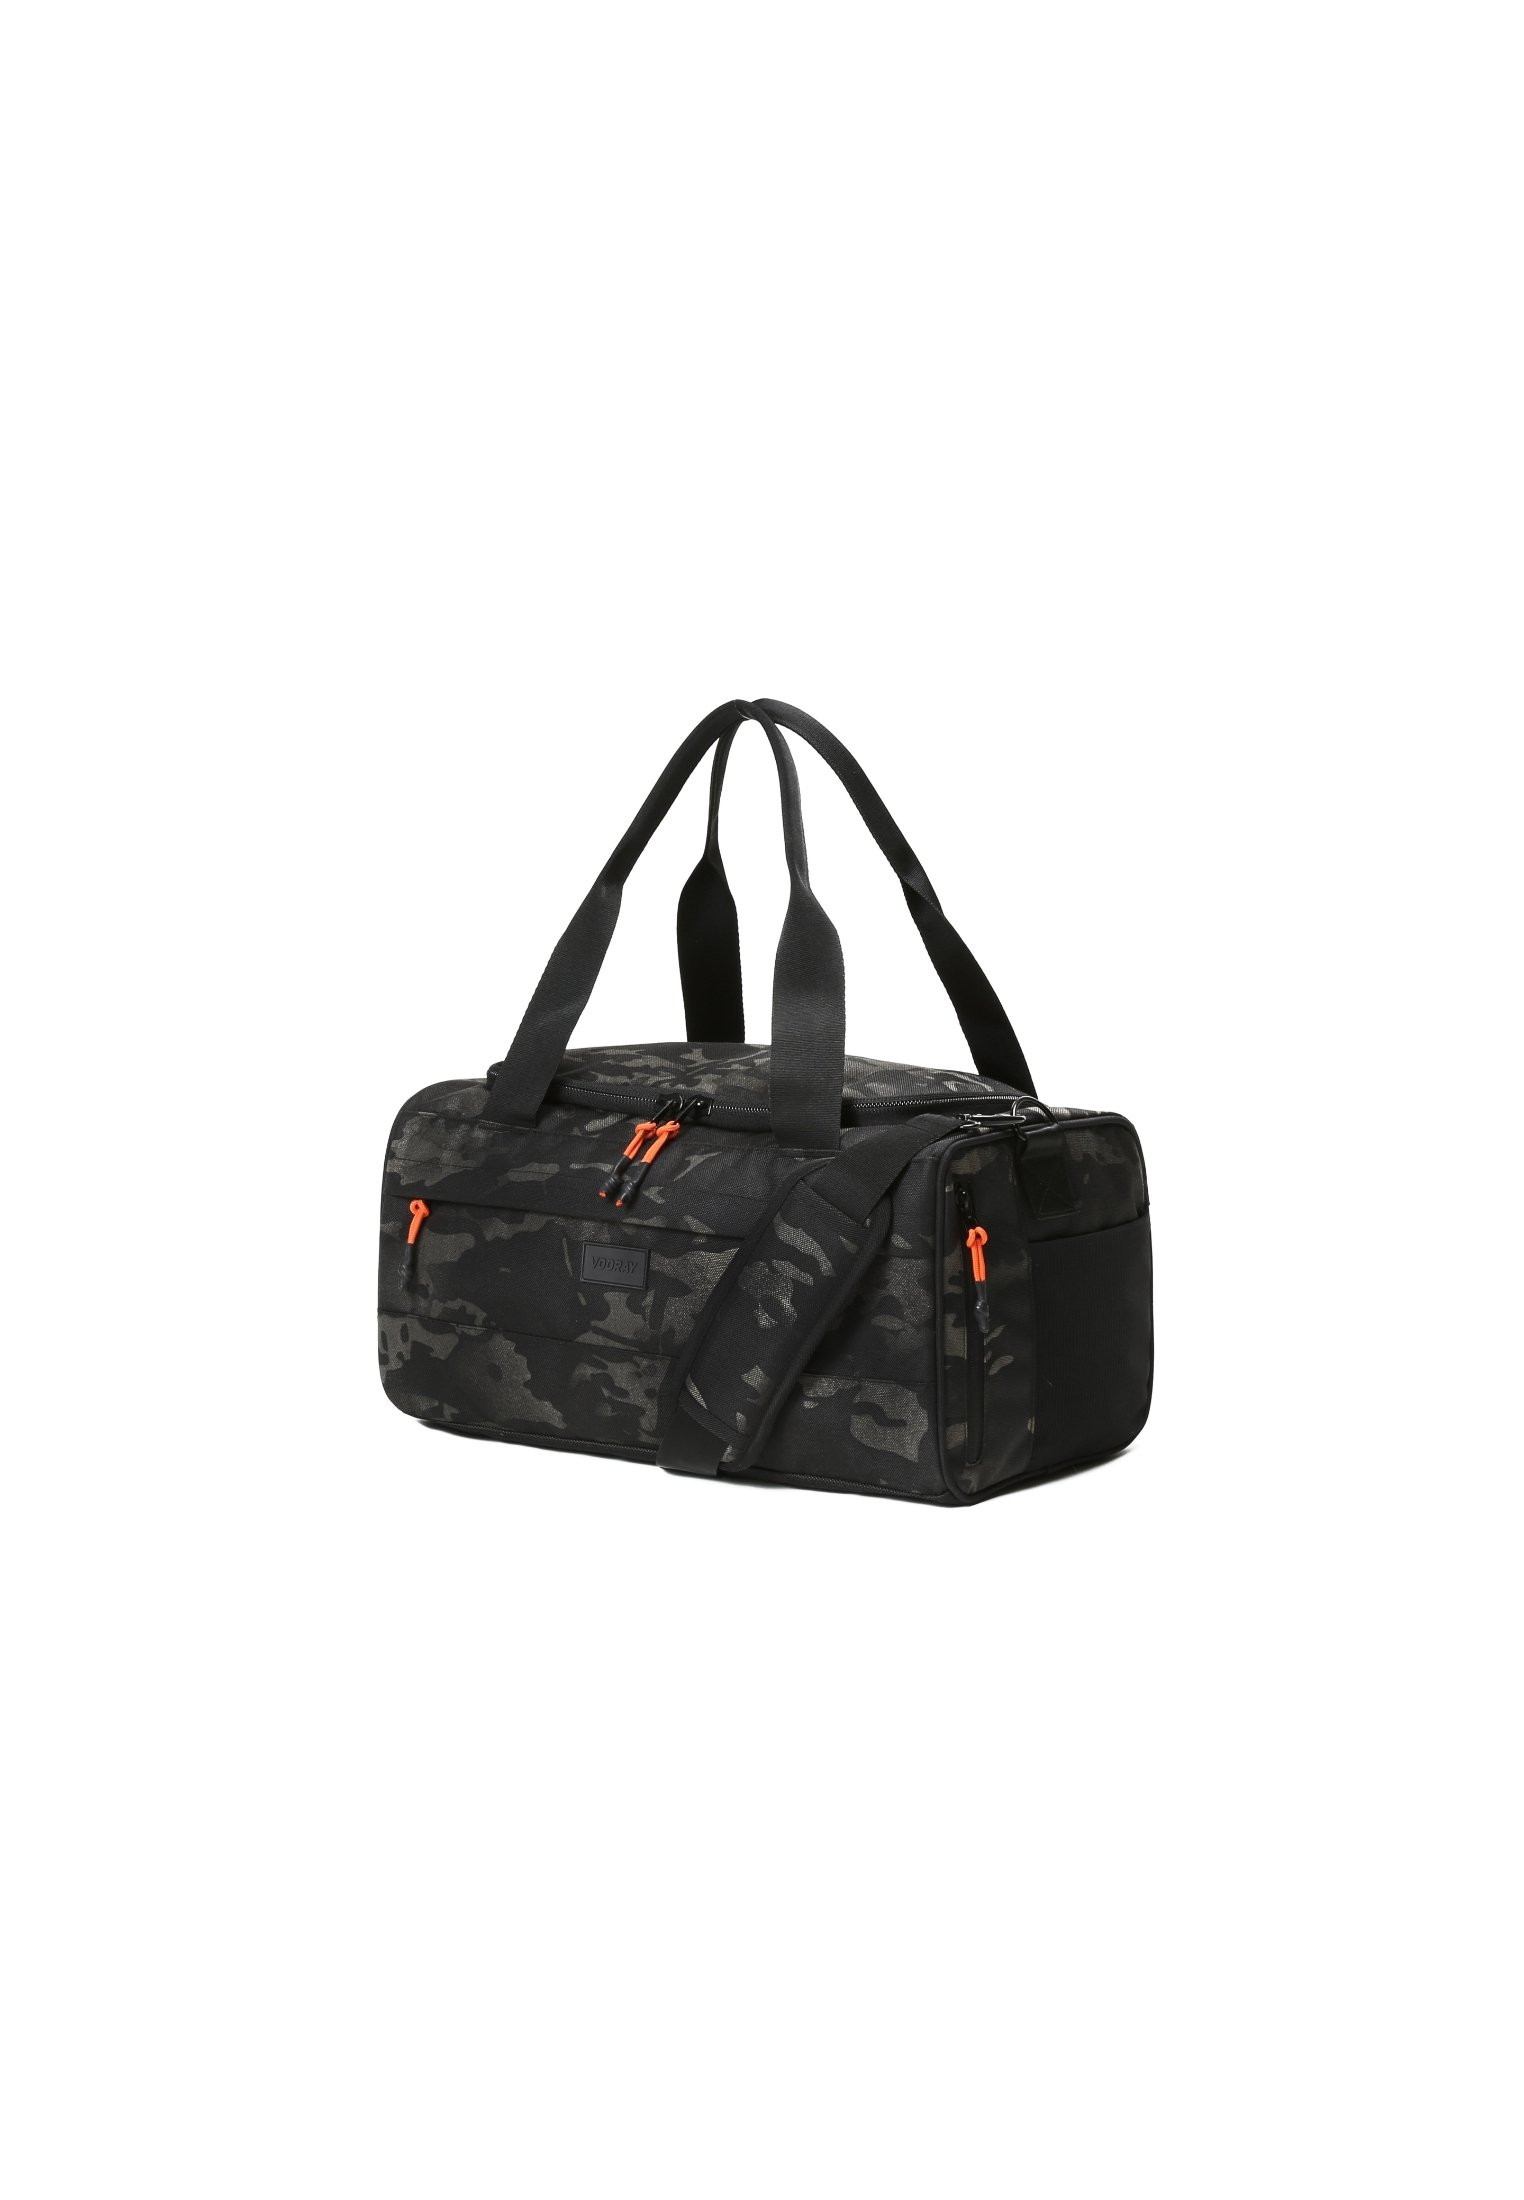 Homme Sac pour chaussures